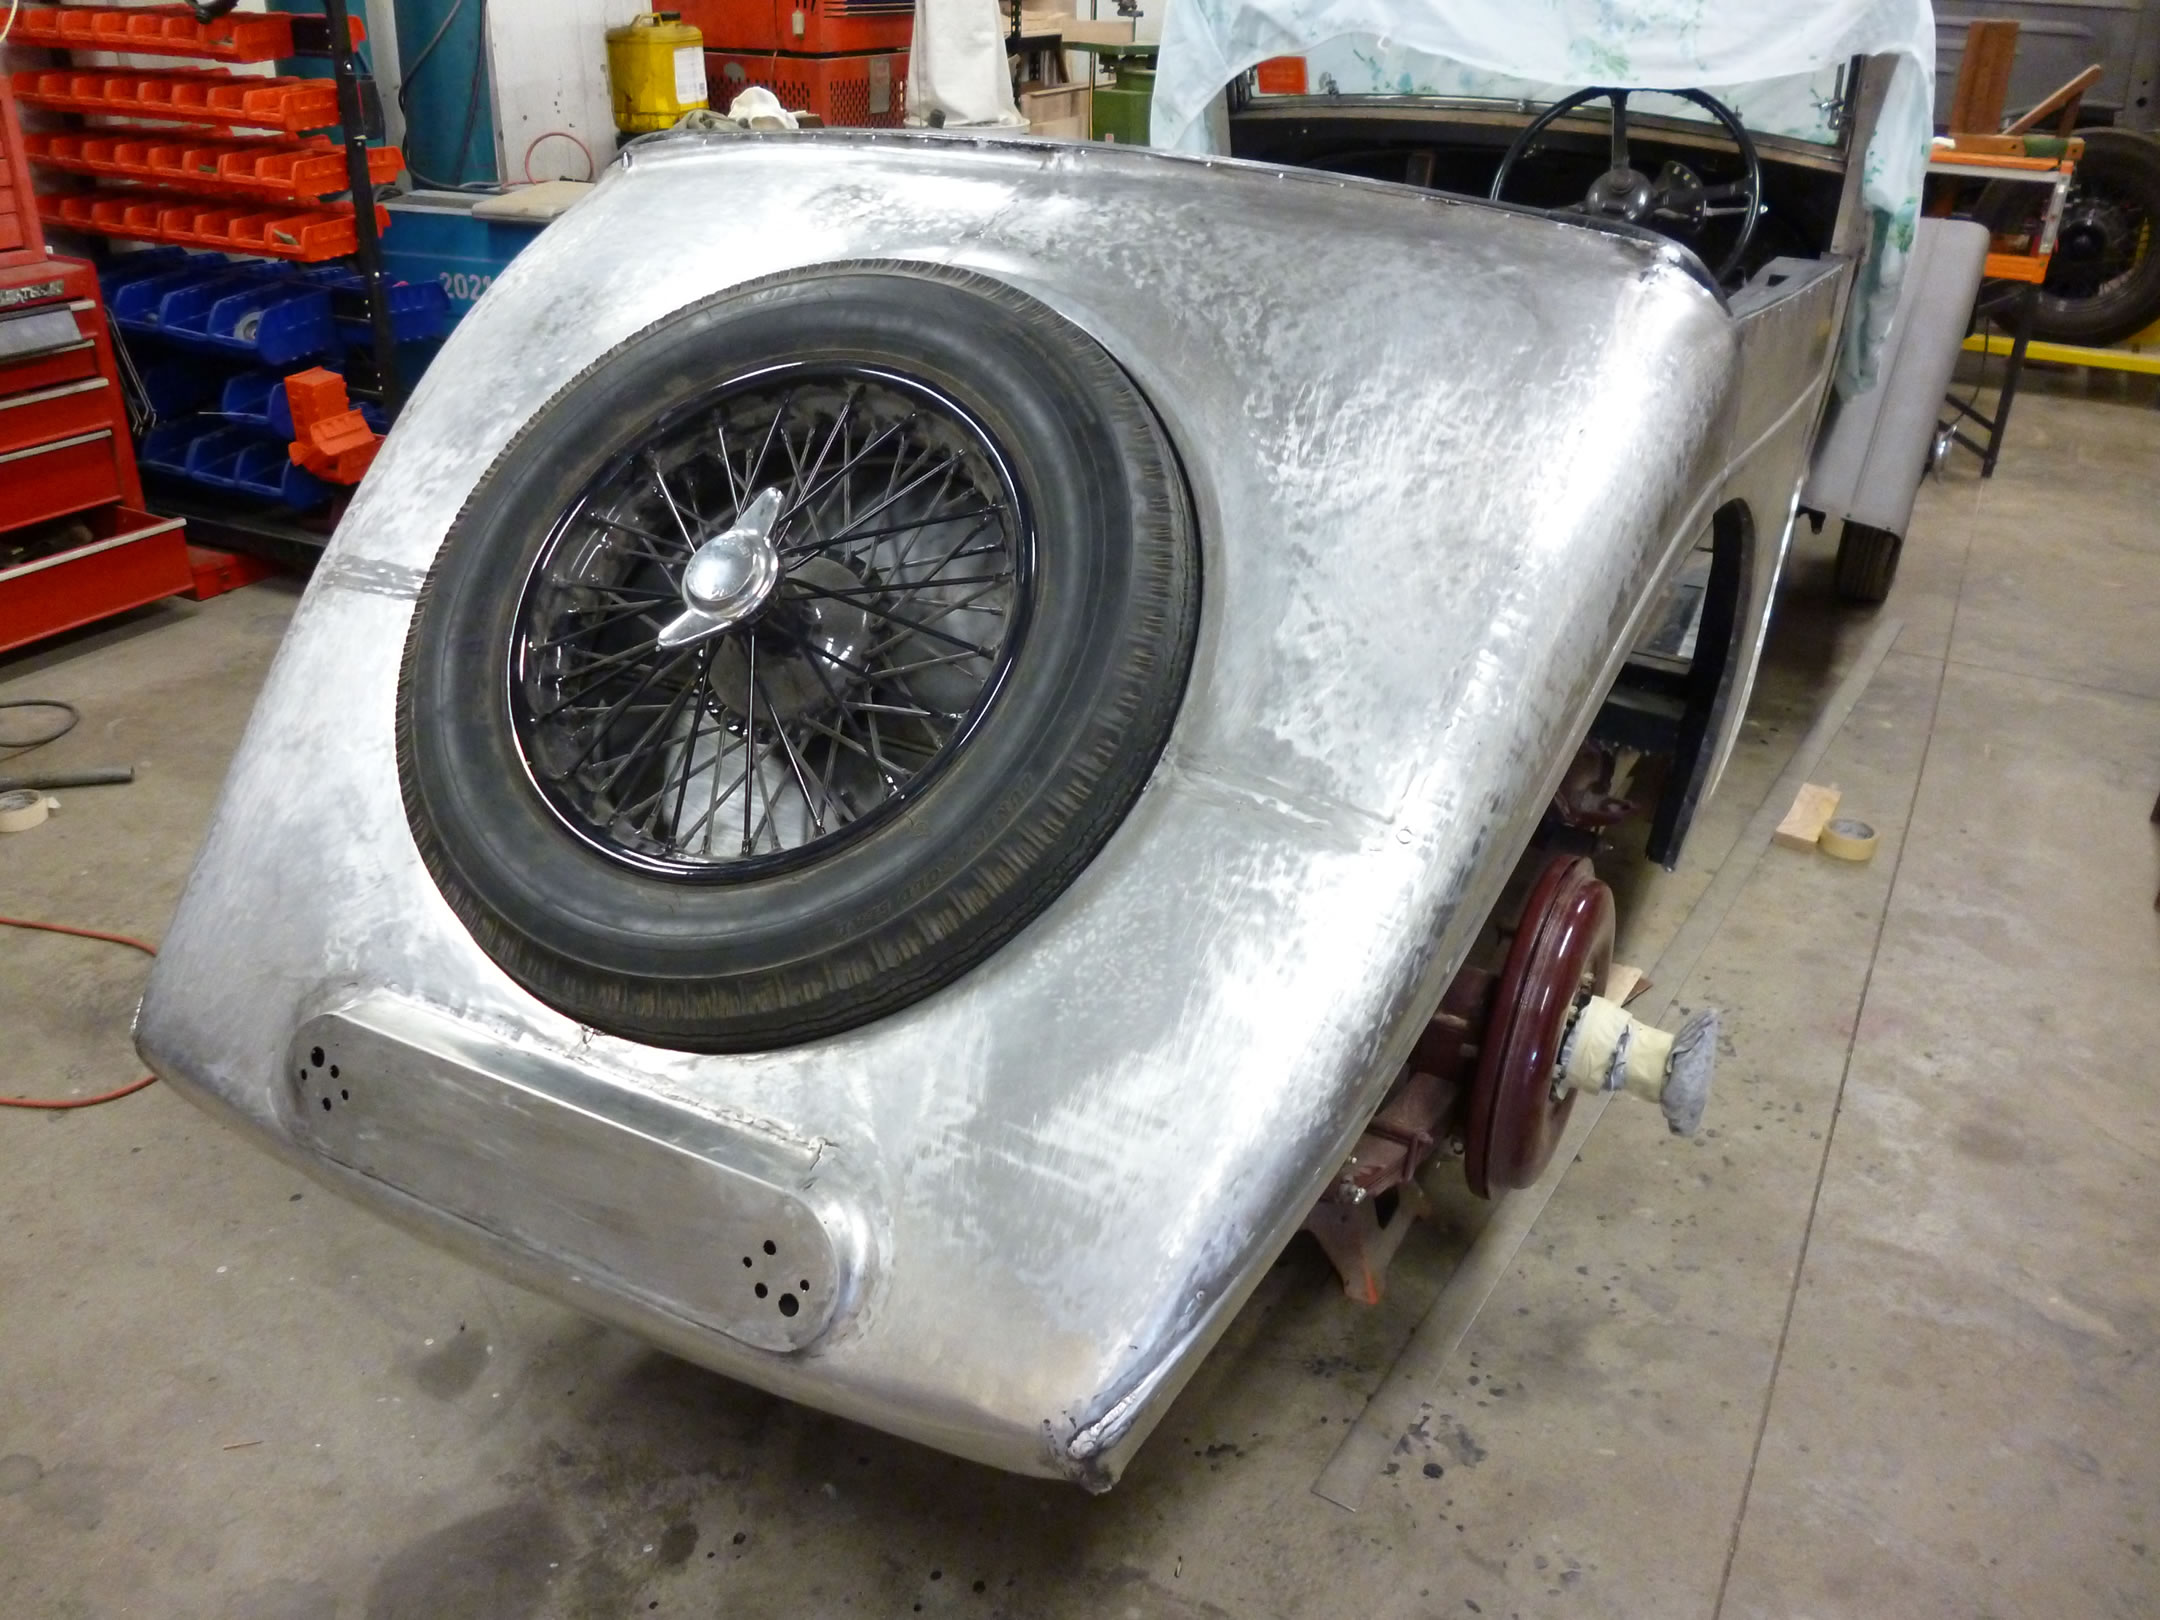 Riley Sedanca aluminium rear view